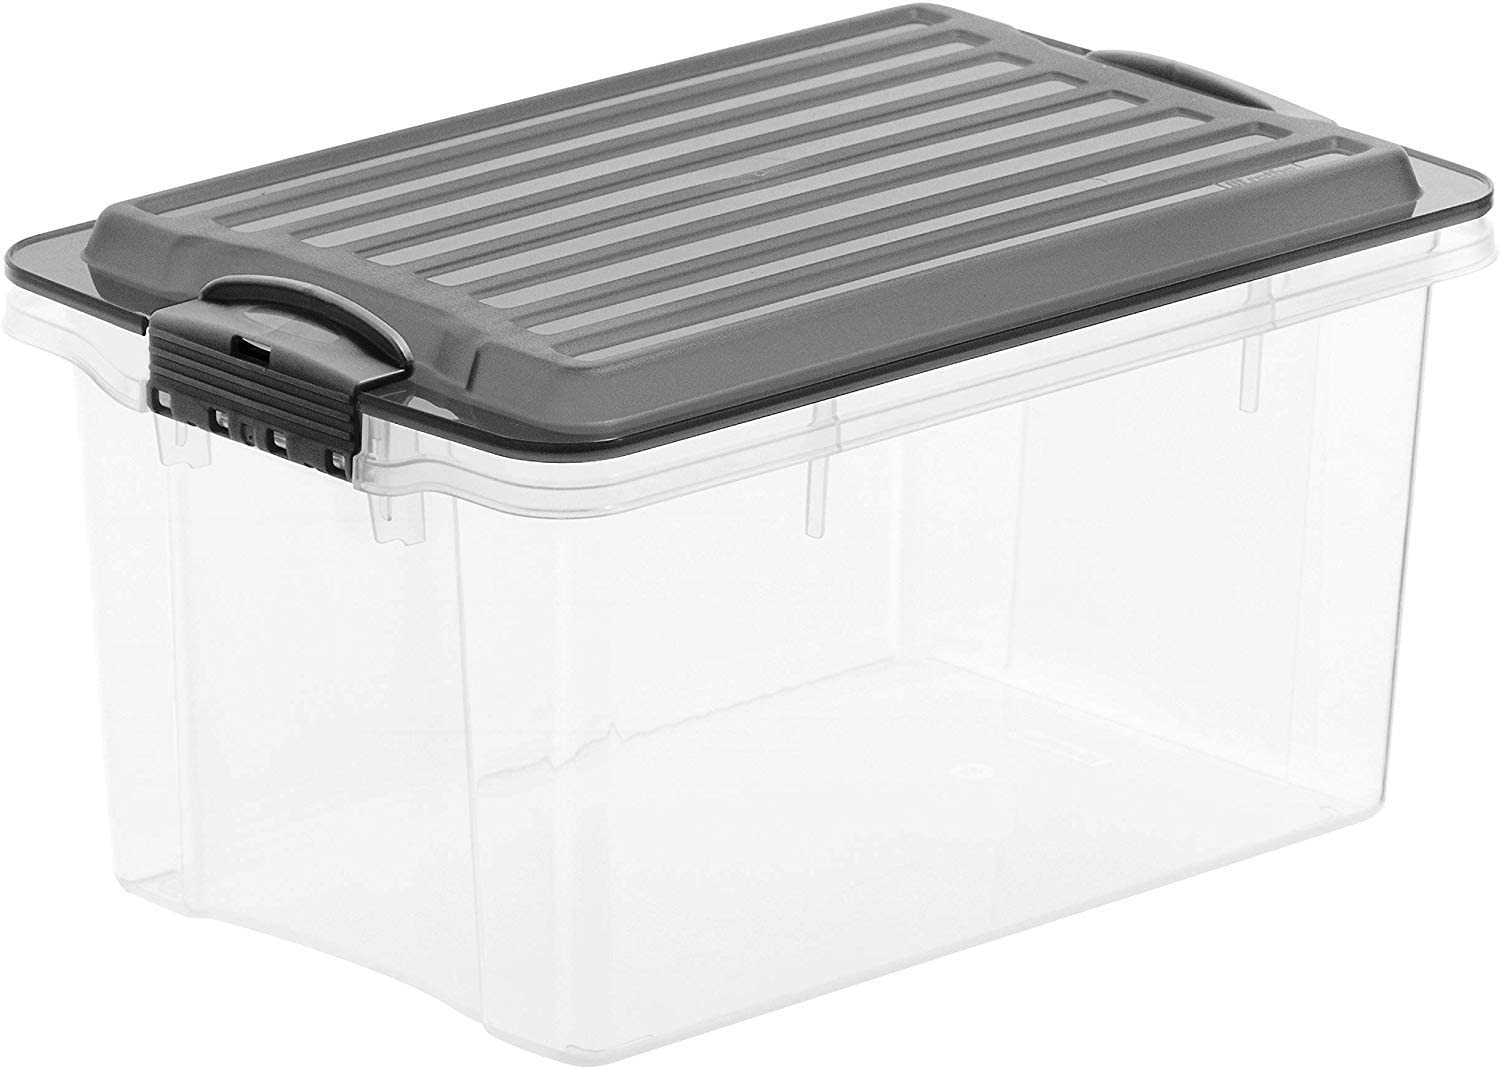 Rotho Comapct Storage Stack Box Size Animer and price revision A5 Litre Save money with 4.5